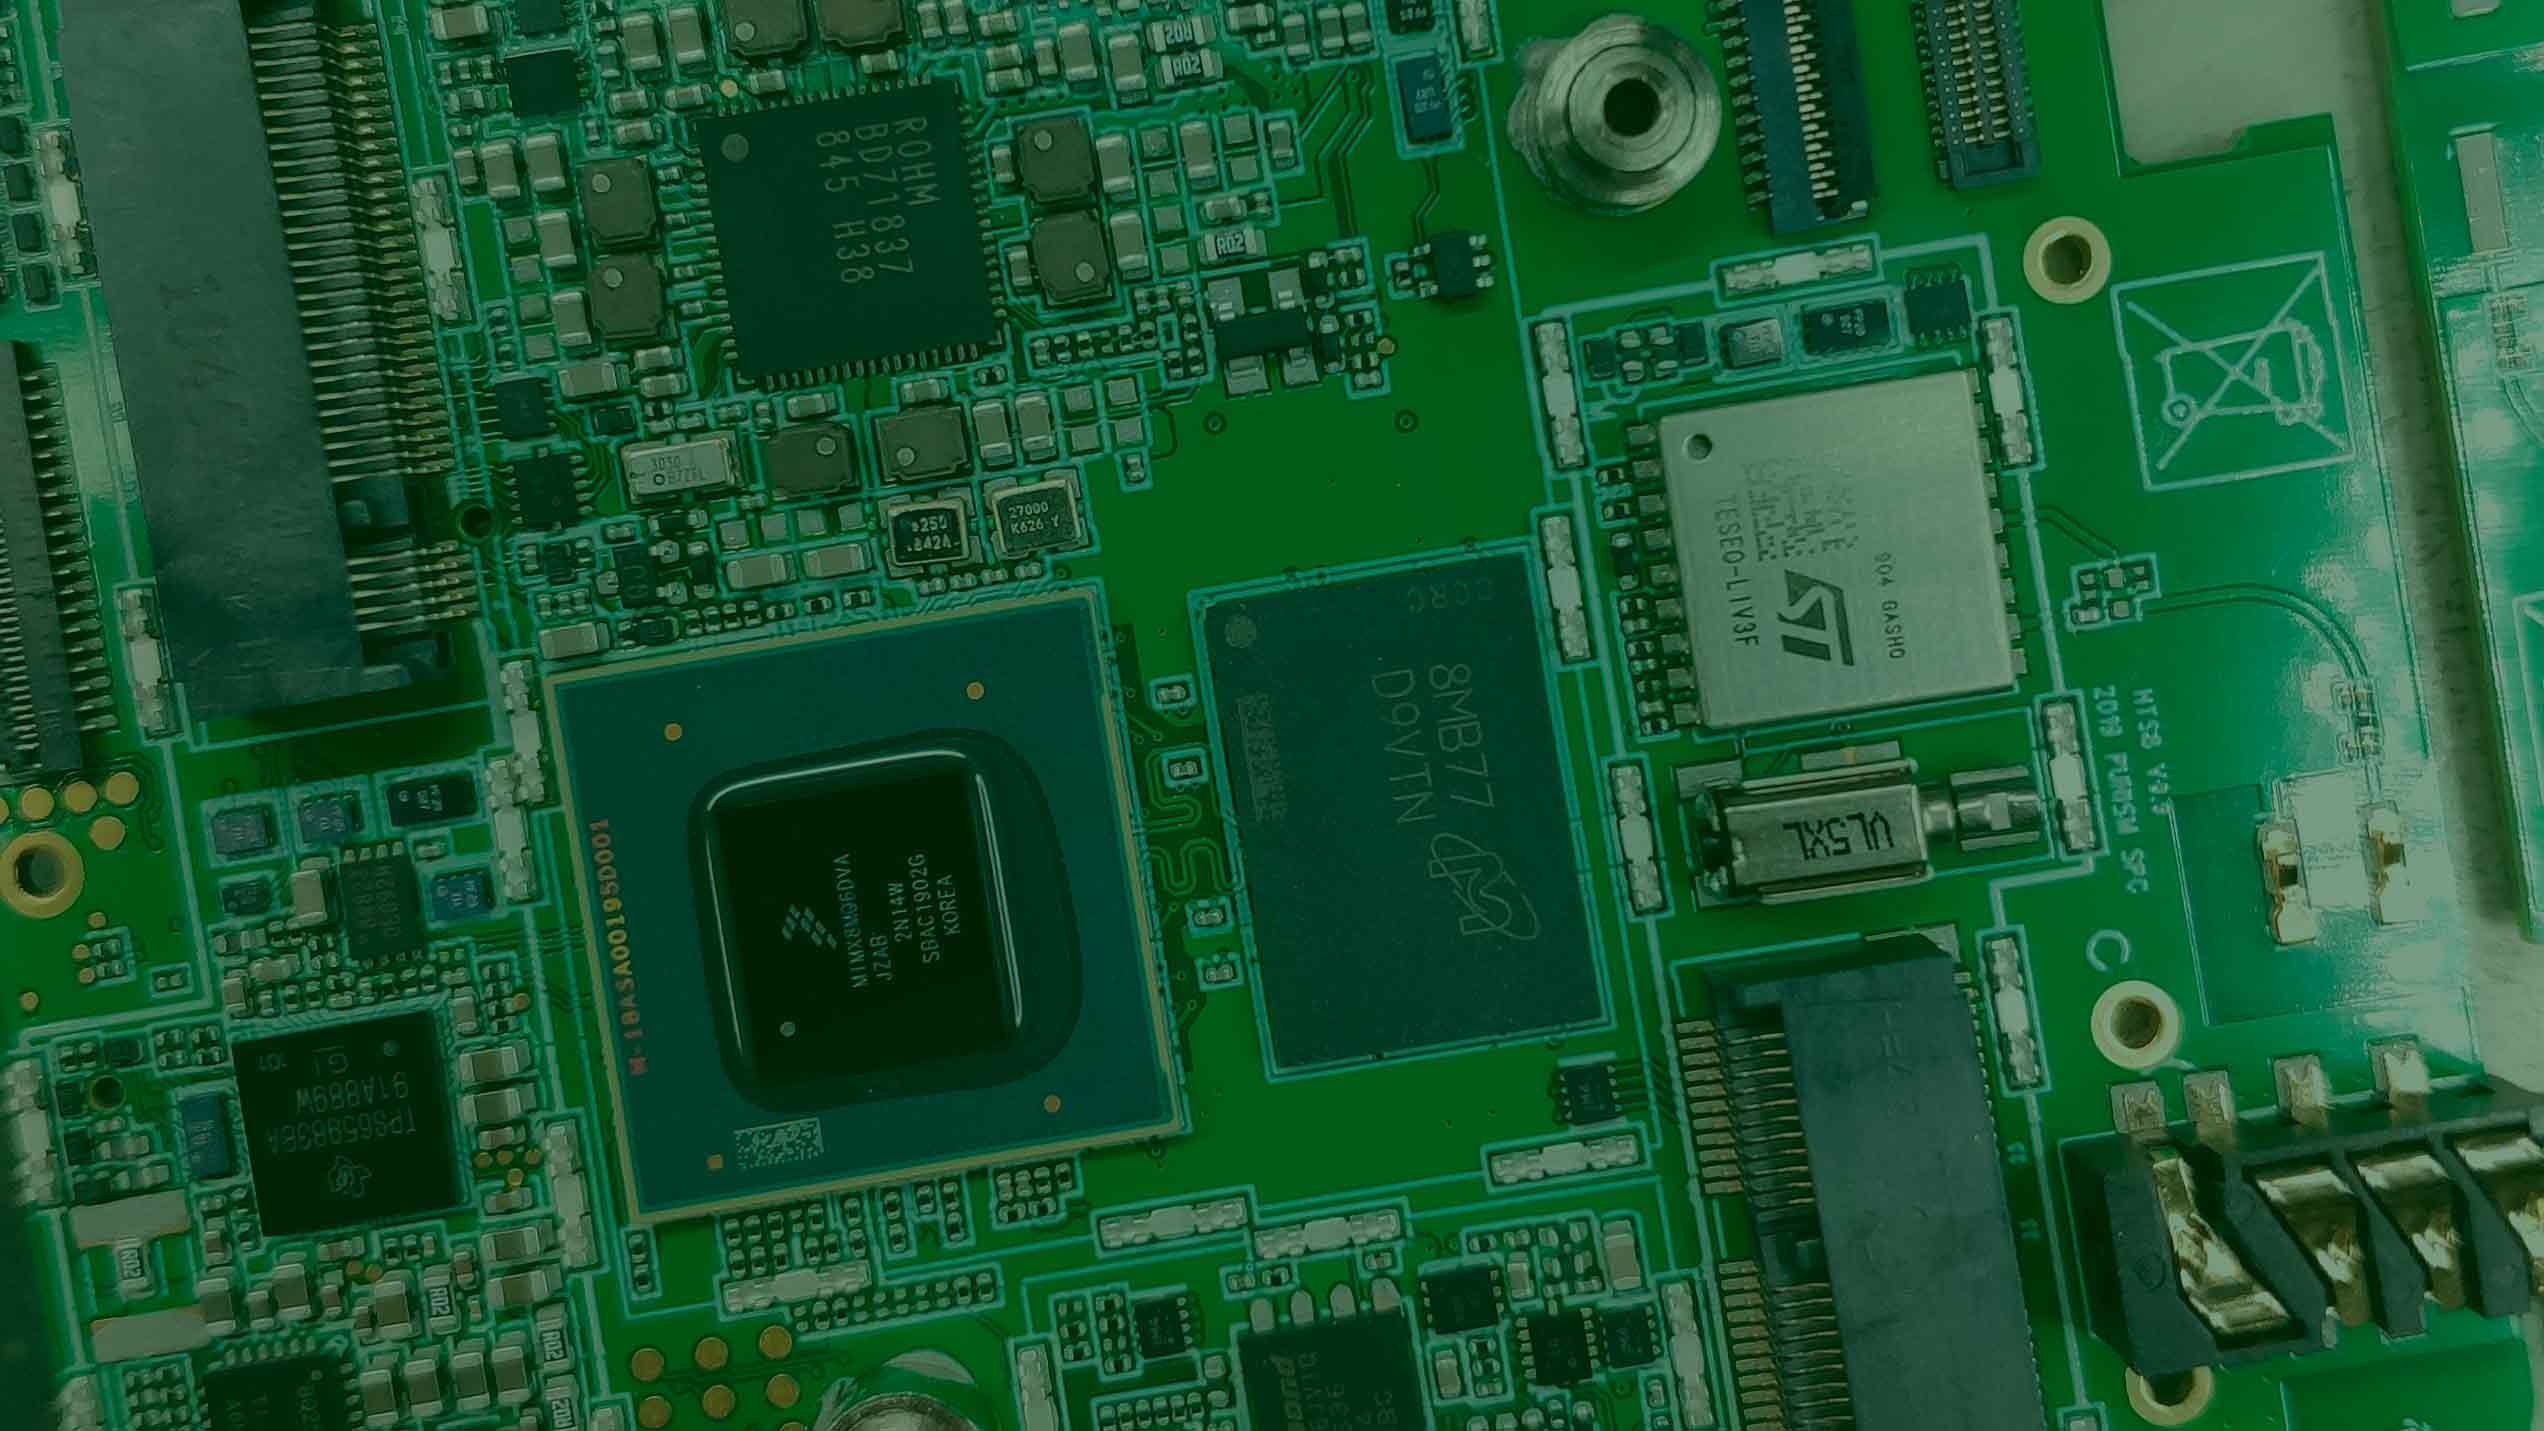 Librem 5 PCB disclosed